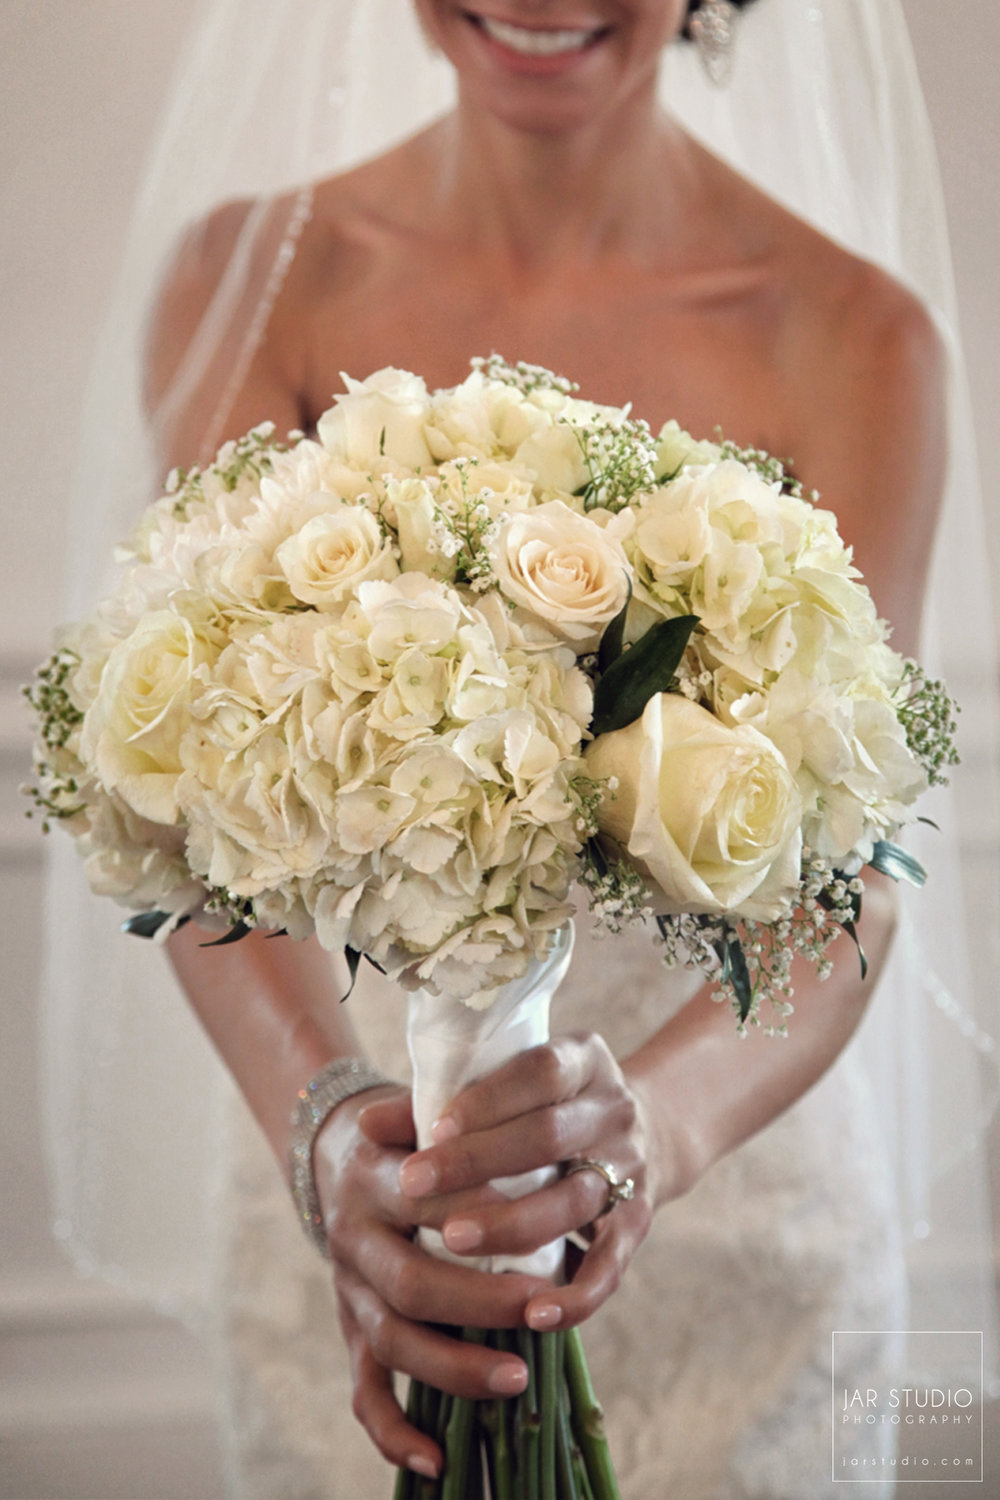 06-stylish-bridal-bouquet-jarstudio-photography.JPG